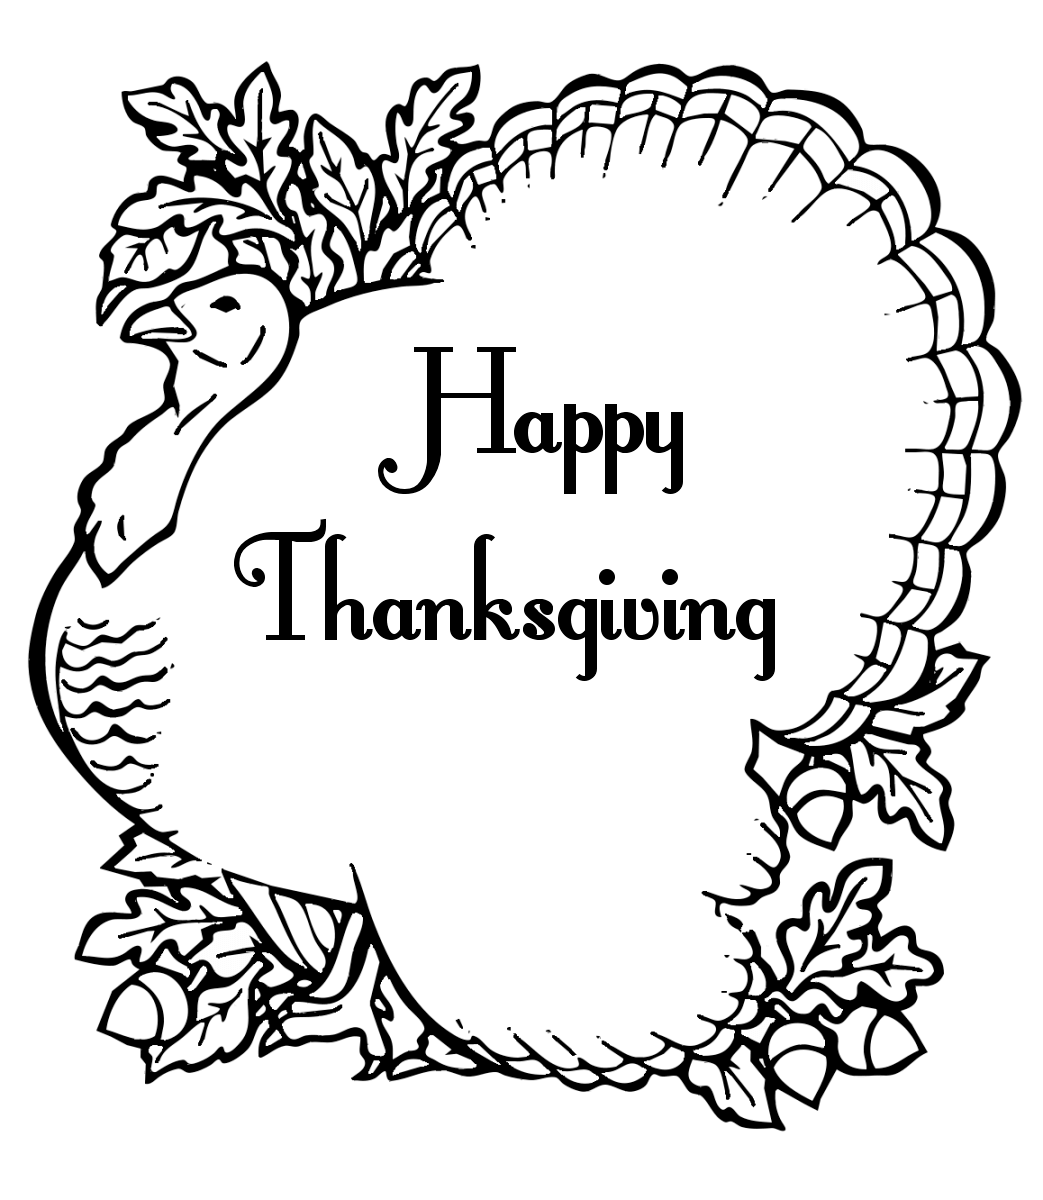 Cool Thanksgiving Coloring Pages For Children | Pinterest ...